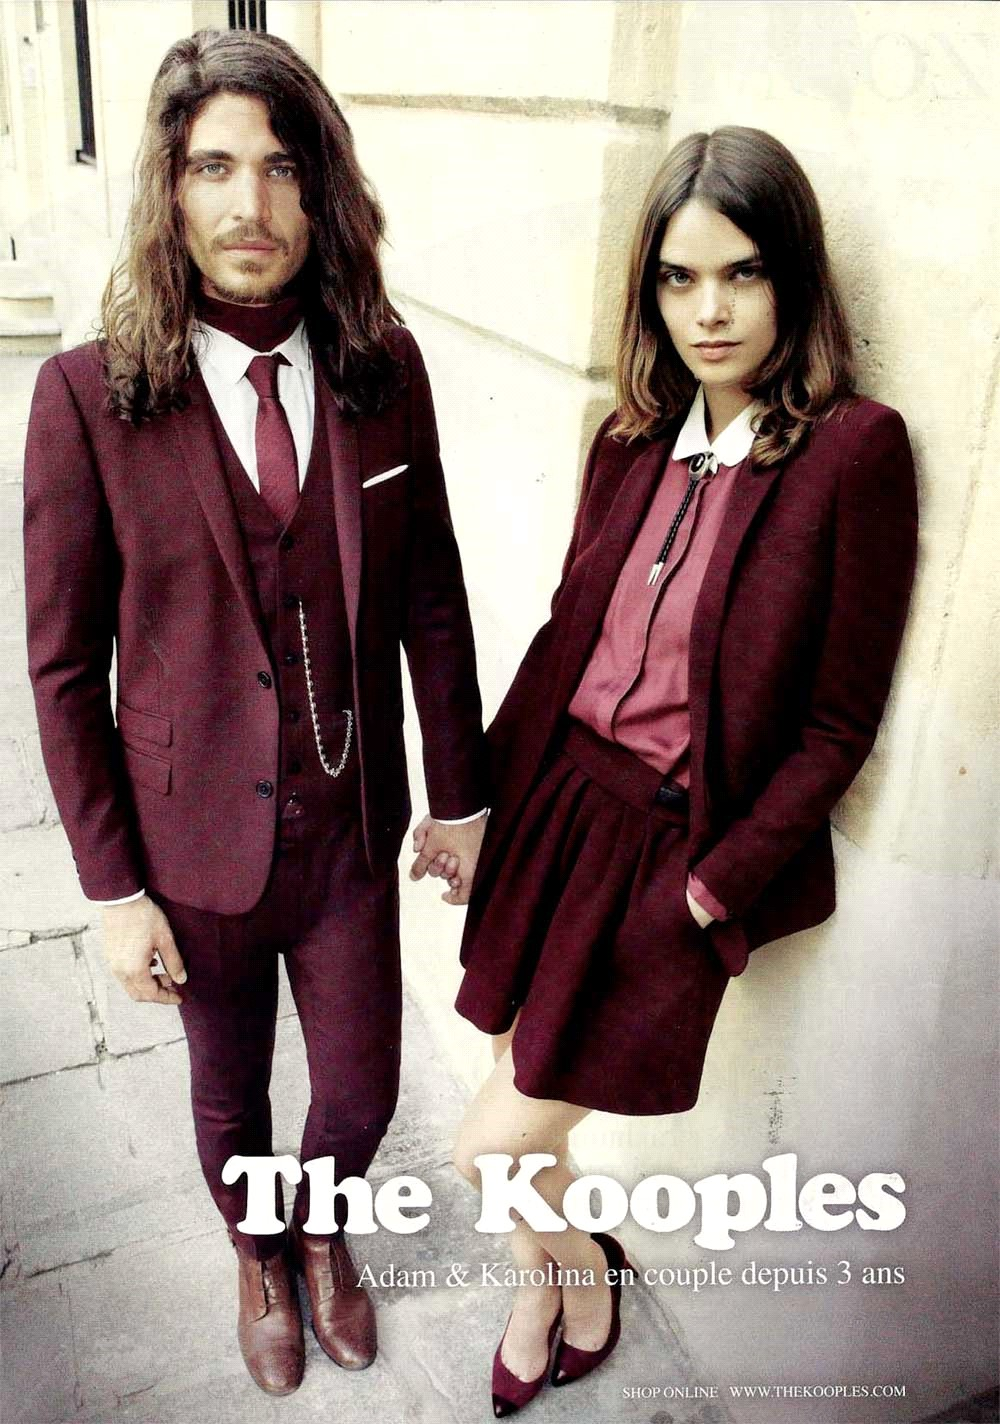 Adam & Karolina The Kooples